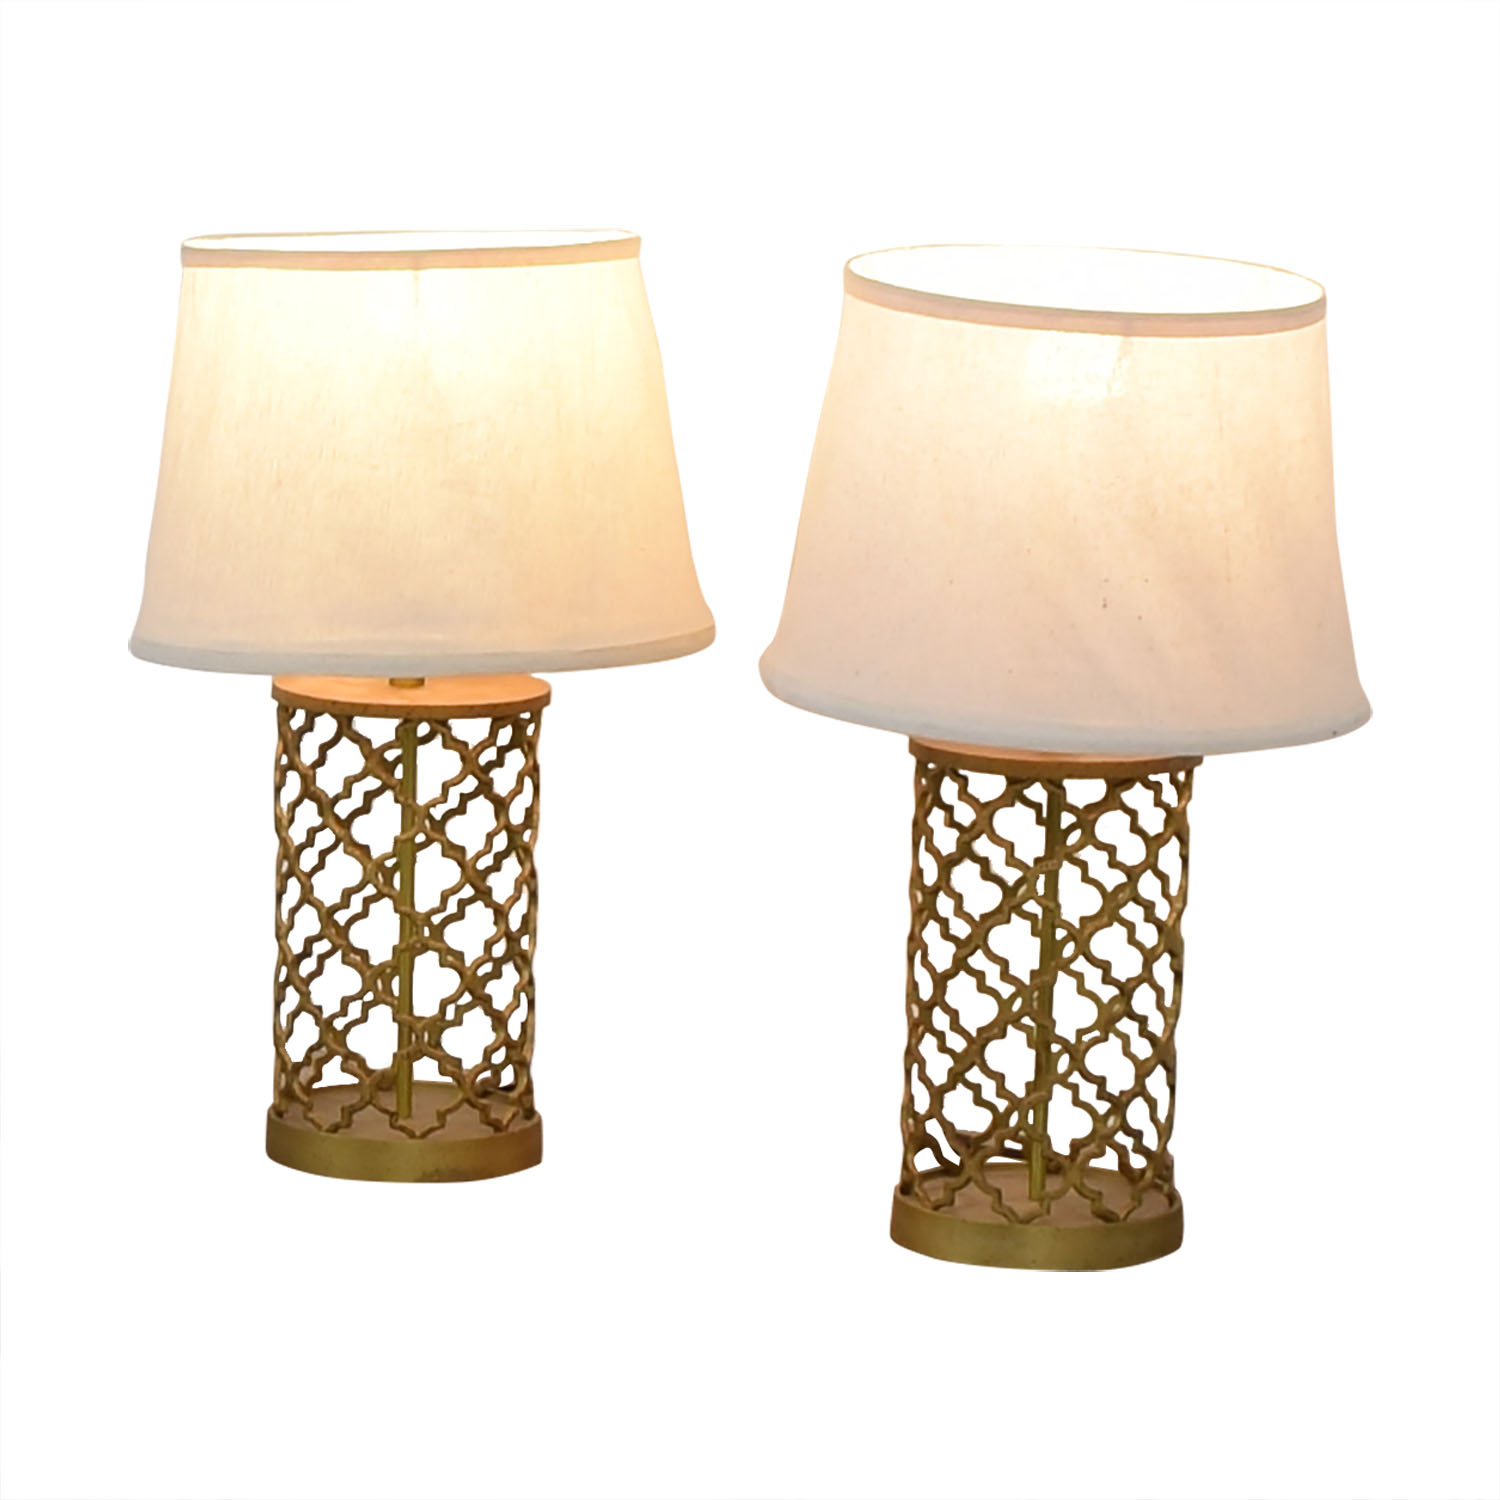 World Market Gold Table Lamps / Lamps